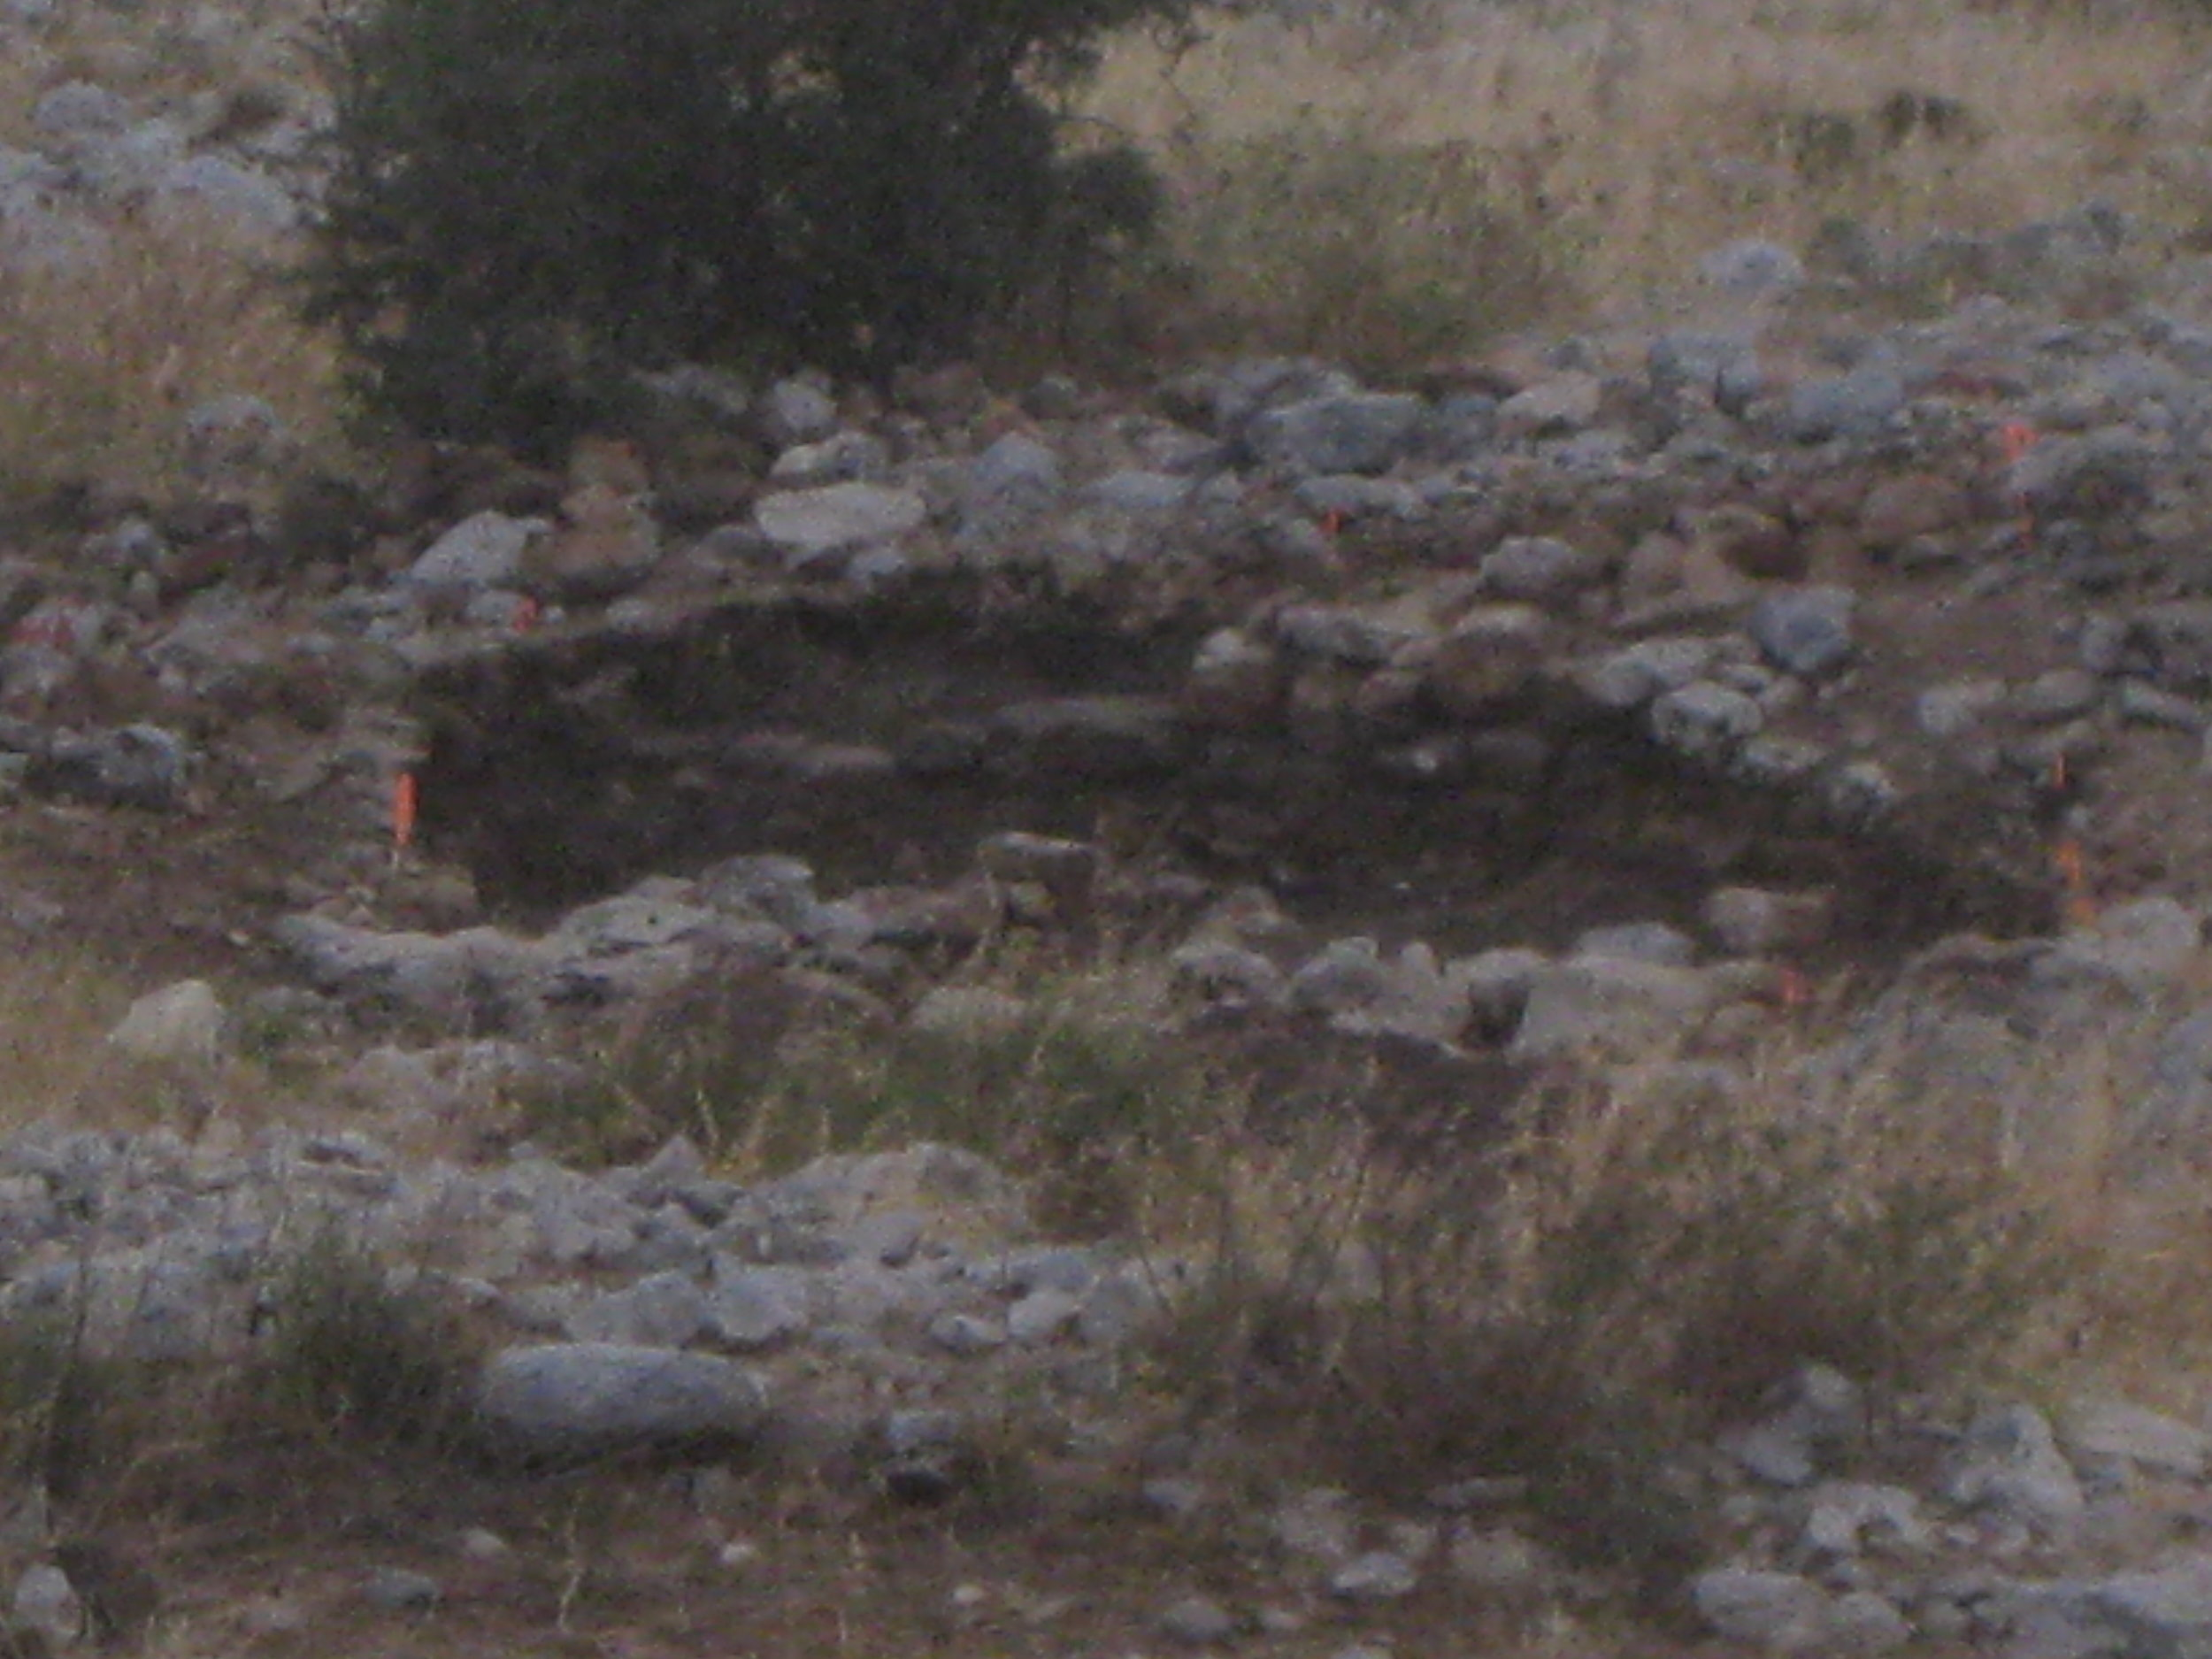 """Our team dug in this square near the Gate of Ai that pointed to the North—digging carefully as if """"draining a bathtub."""" We laughed when some stones pitched over our 10m boundary then had to be moved again when we needed to follow a wall that disected our boundary."""